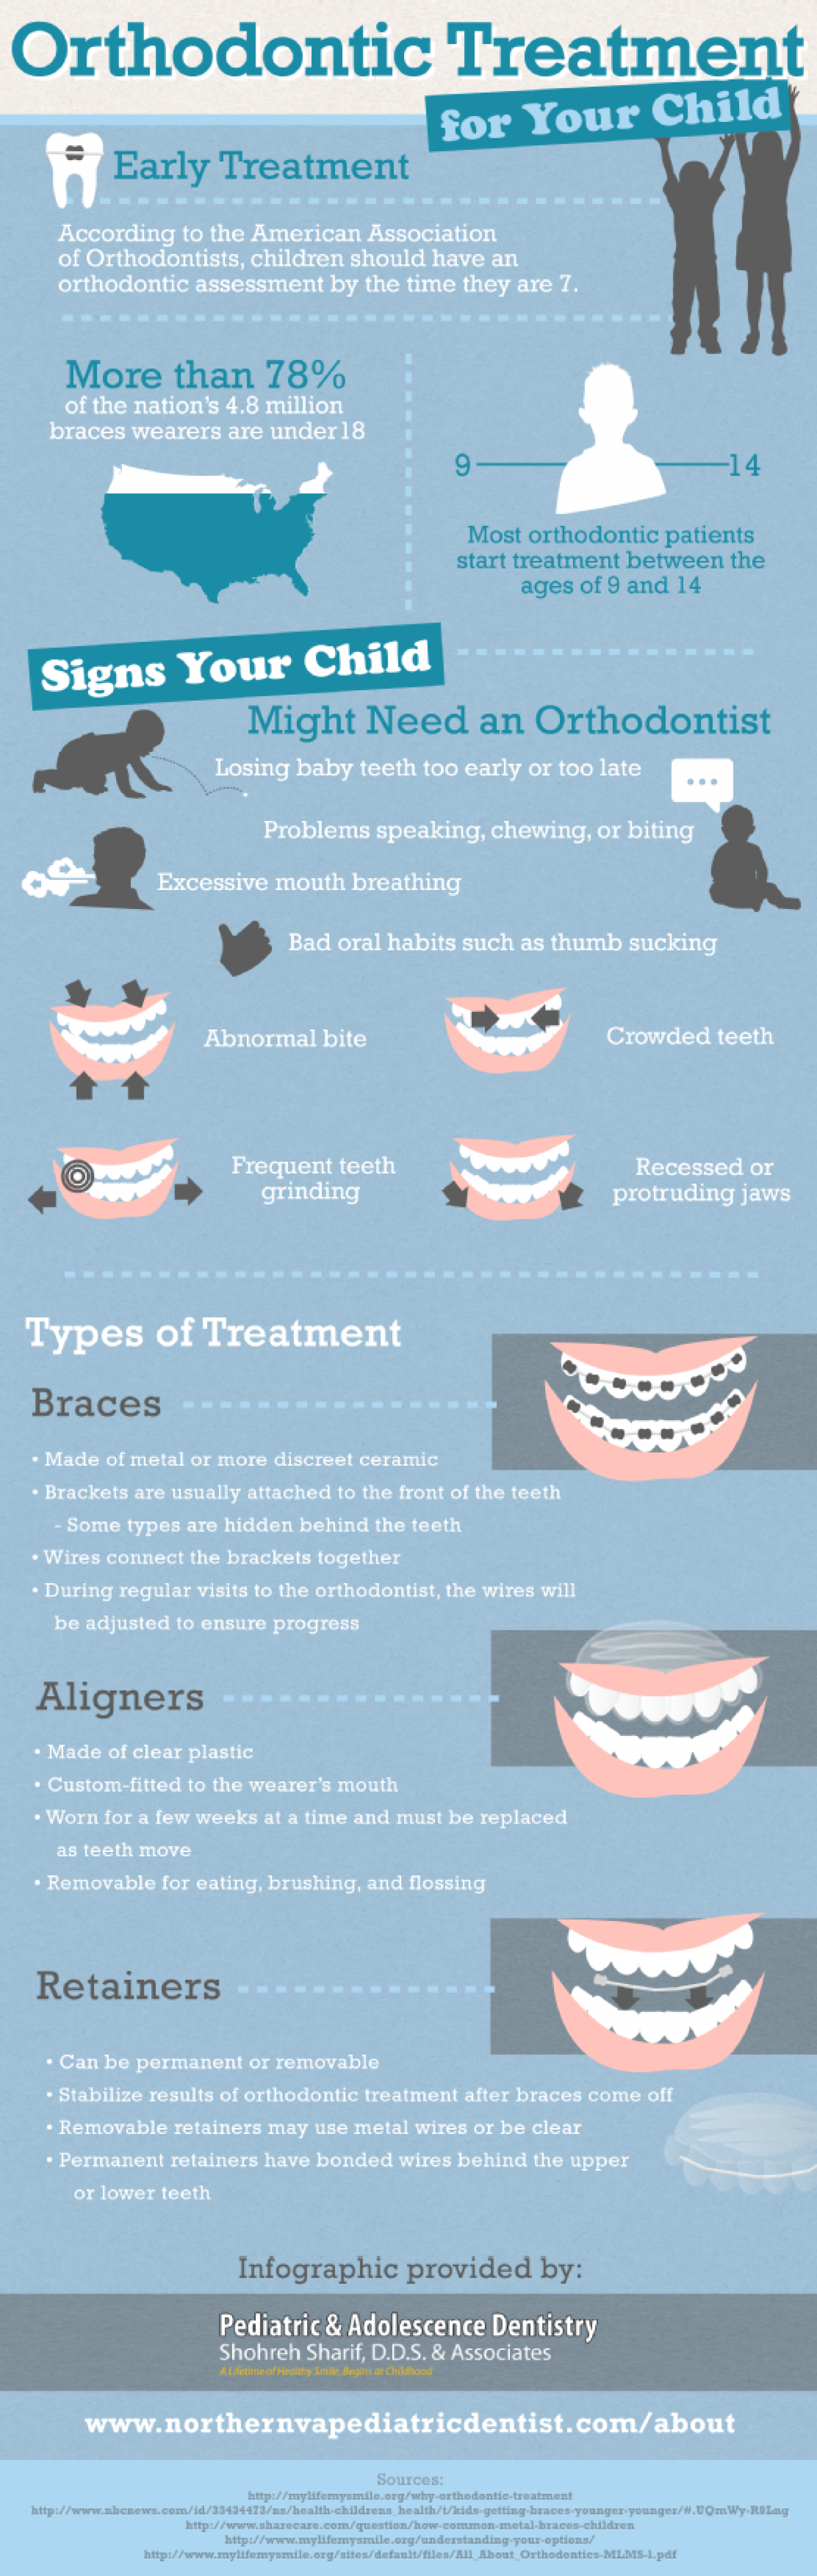 Orthodontic Treatment for Your Child Infographic